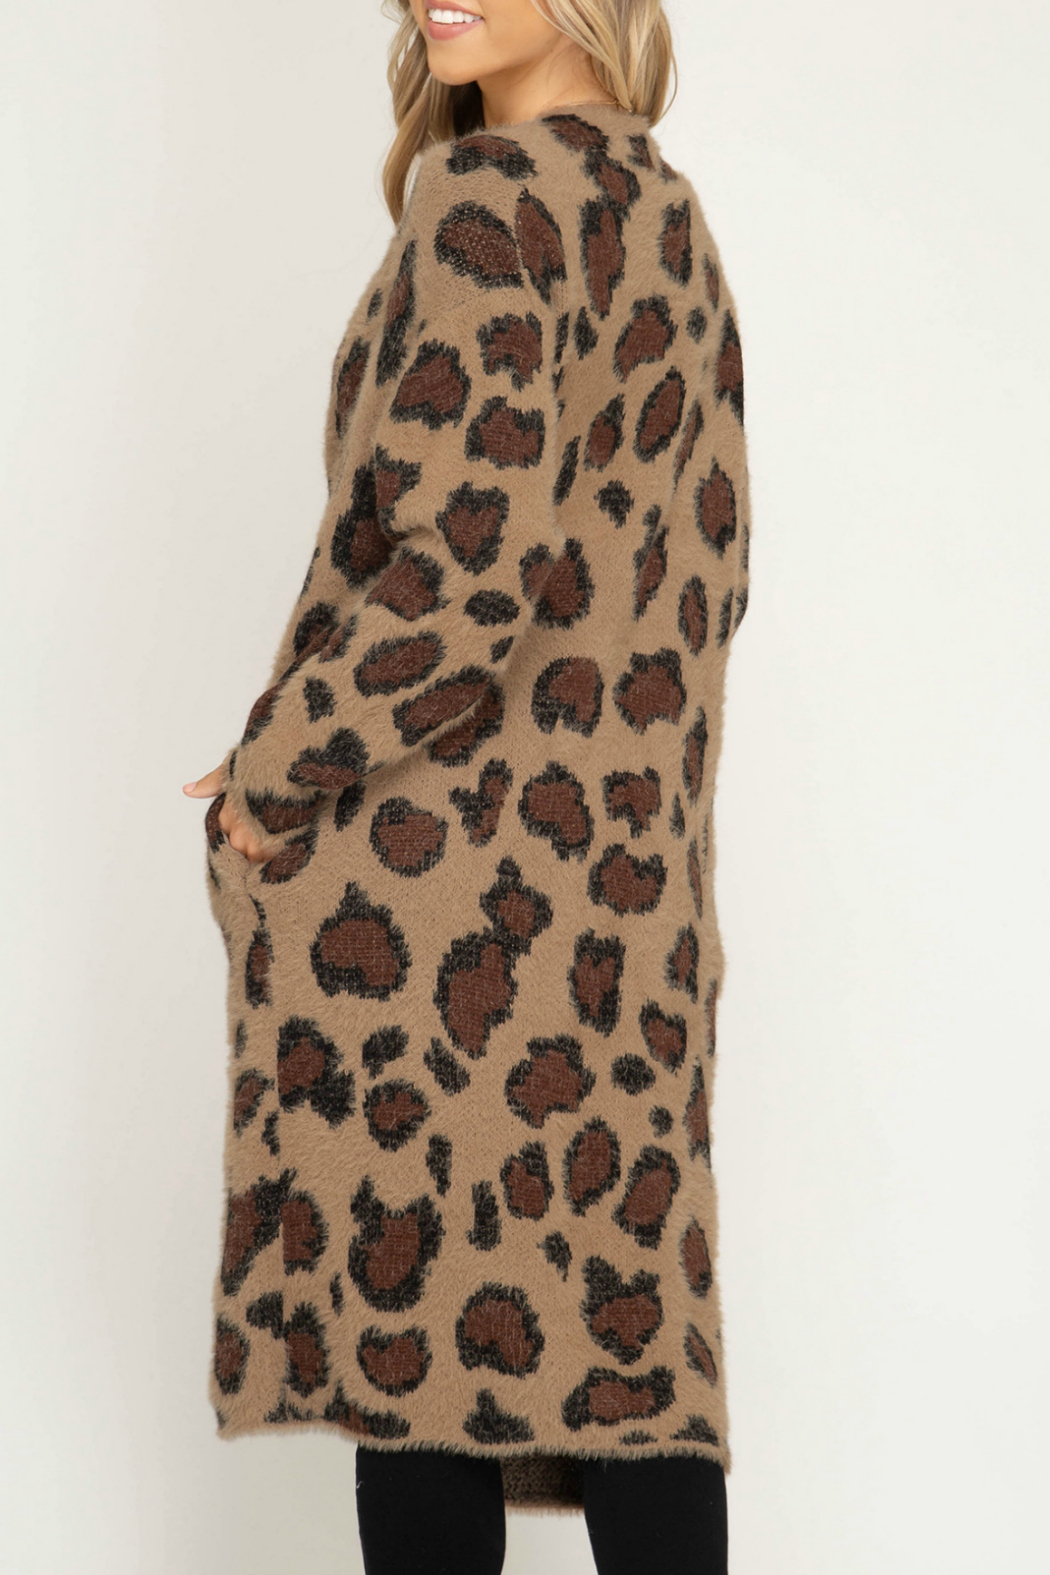 She & Sky  Leopard Fuzzy Sweater Cardigan - Front Full Image